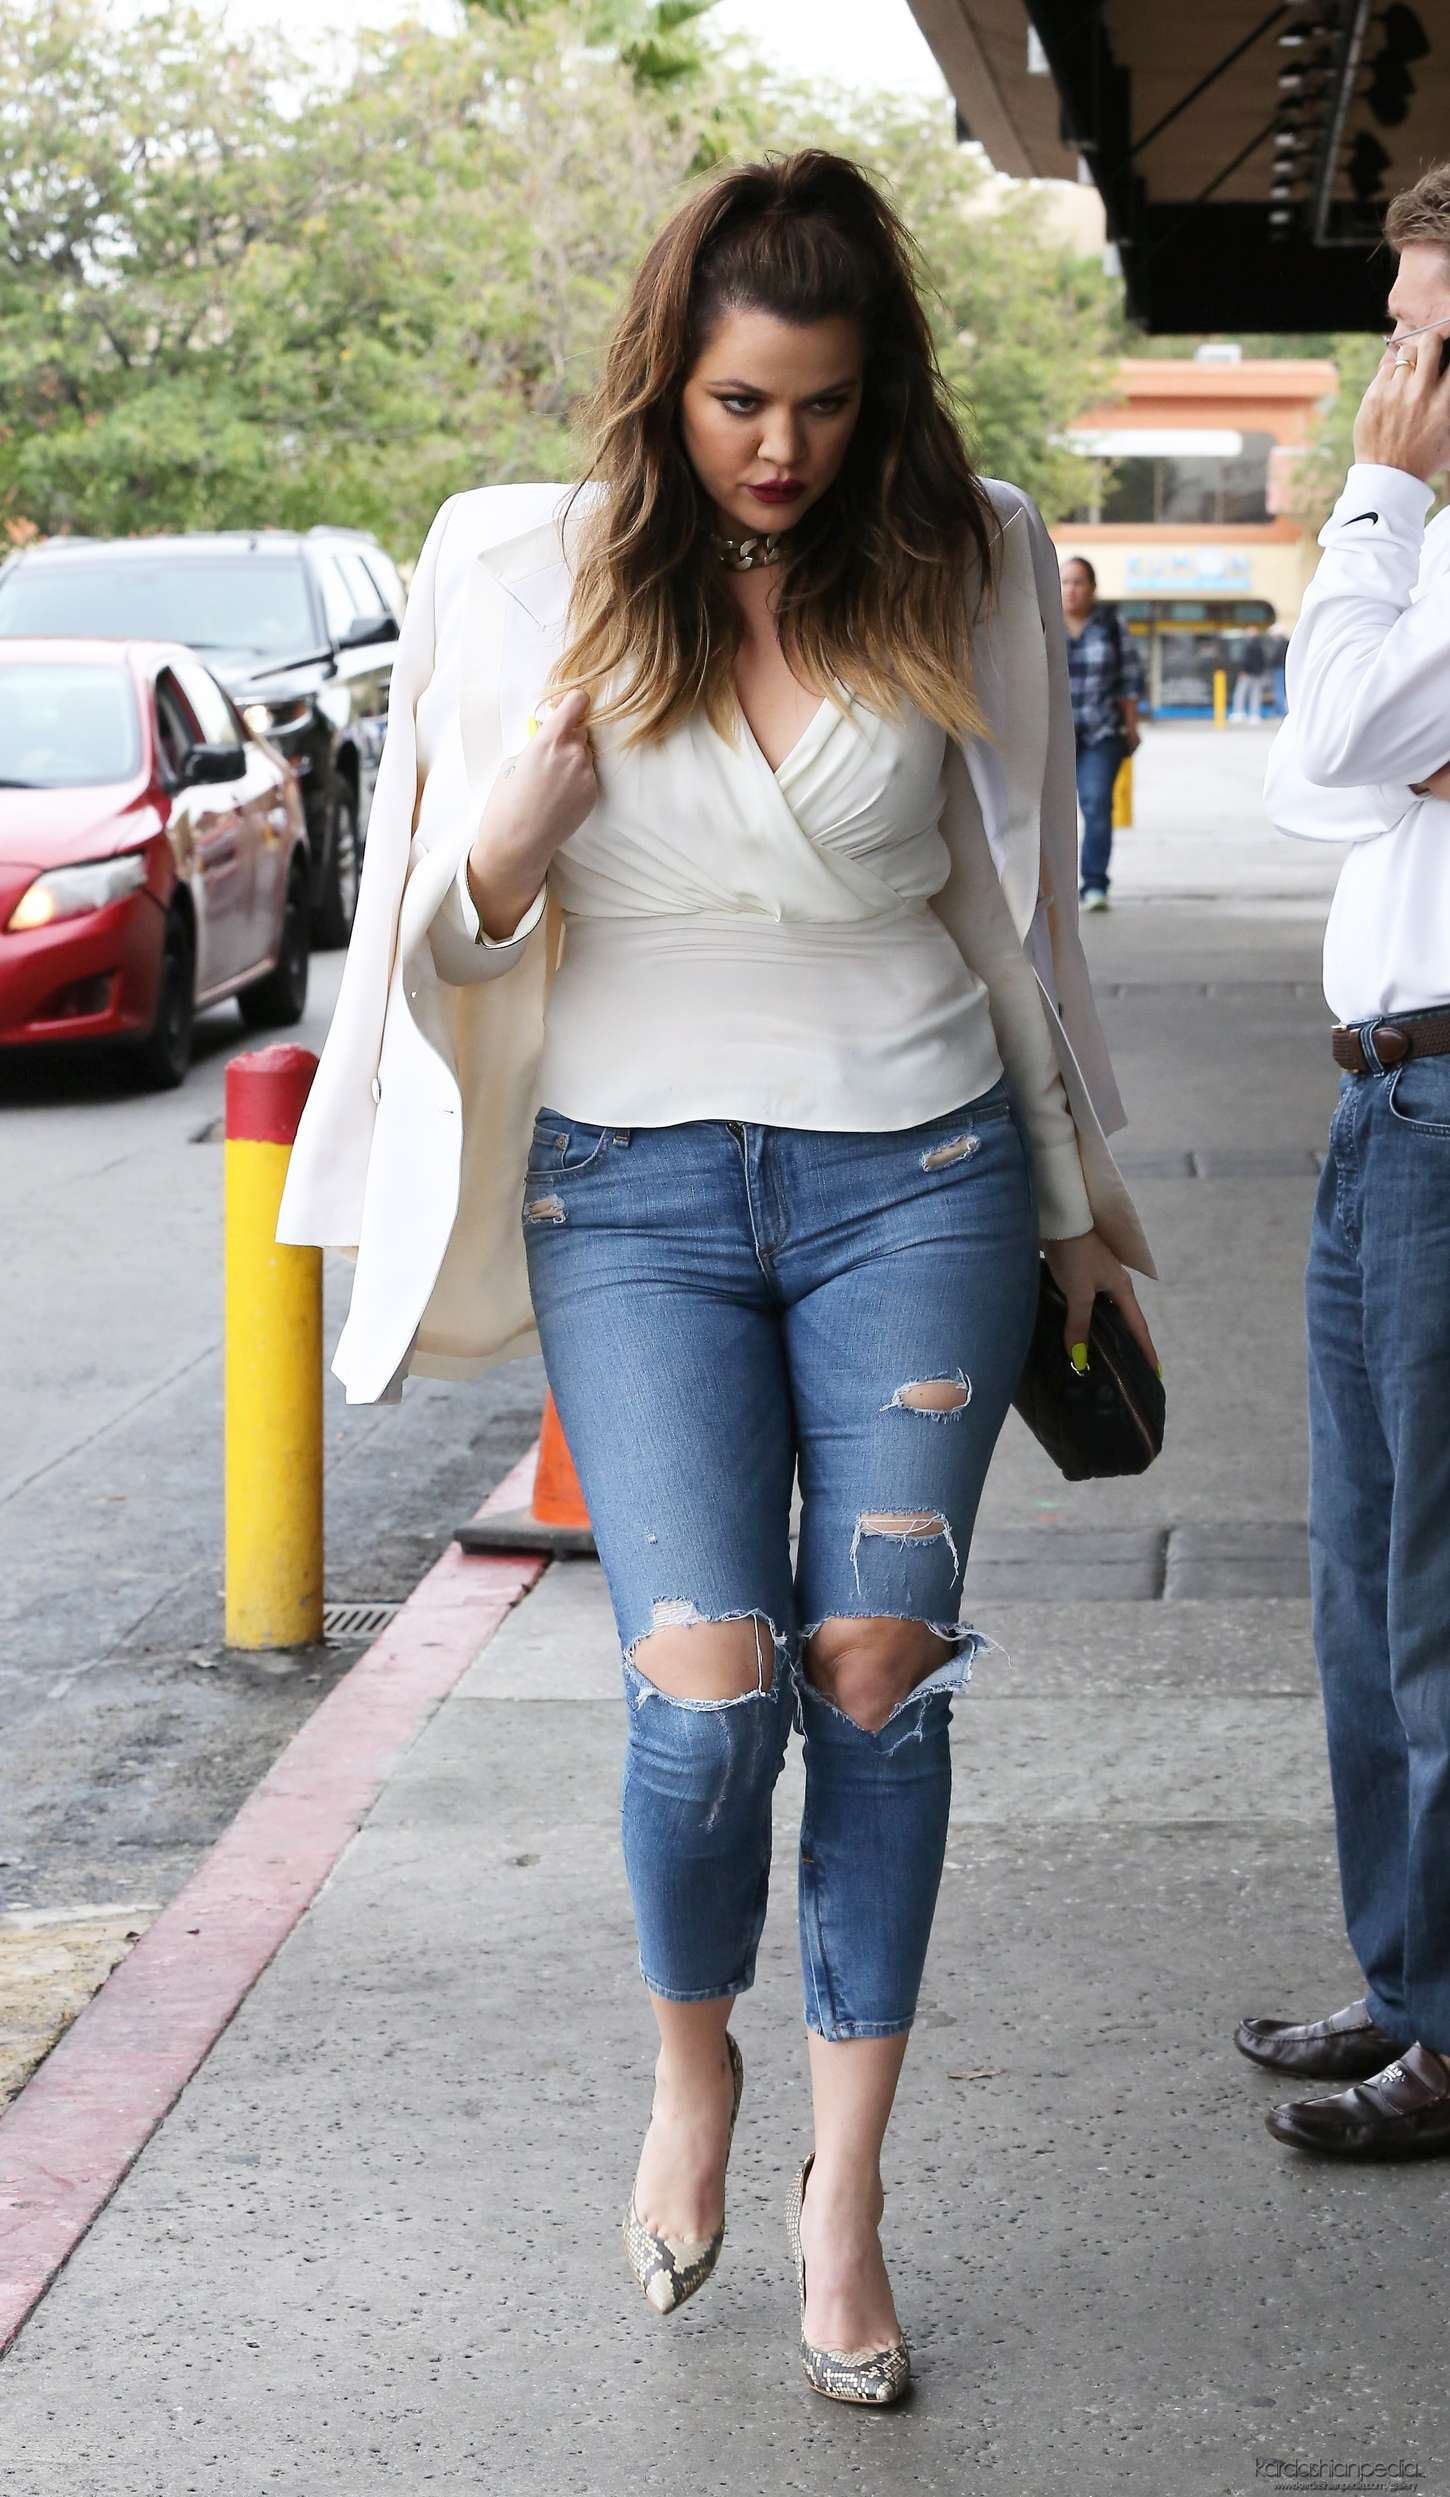 khloe kardashian in tight ripped jeans 04 gotceleb